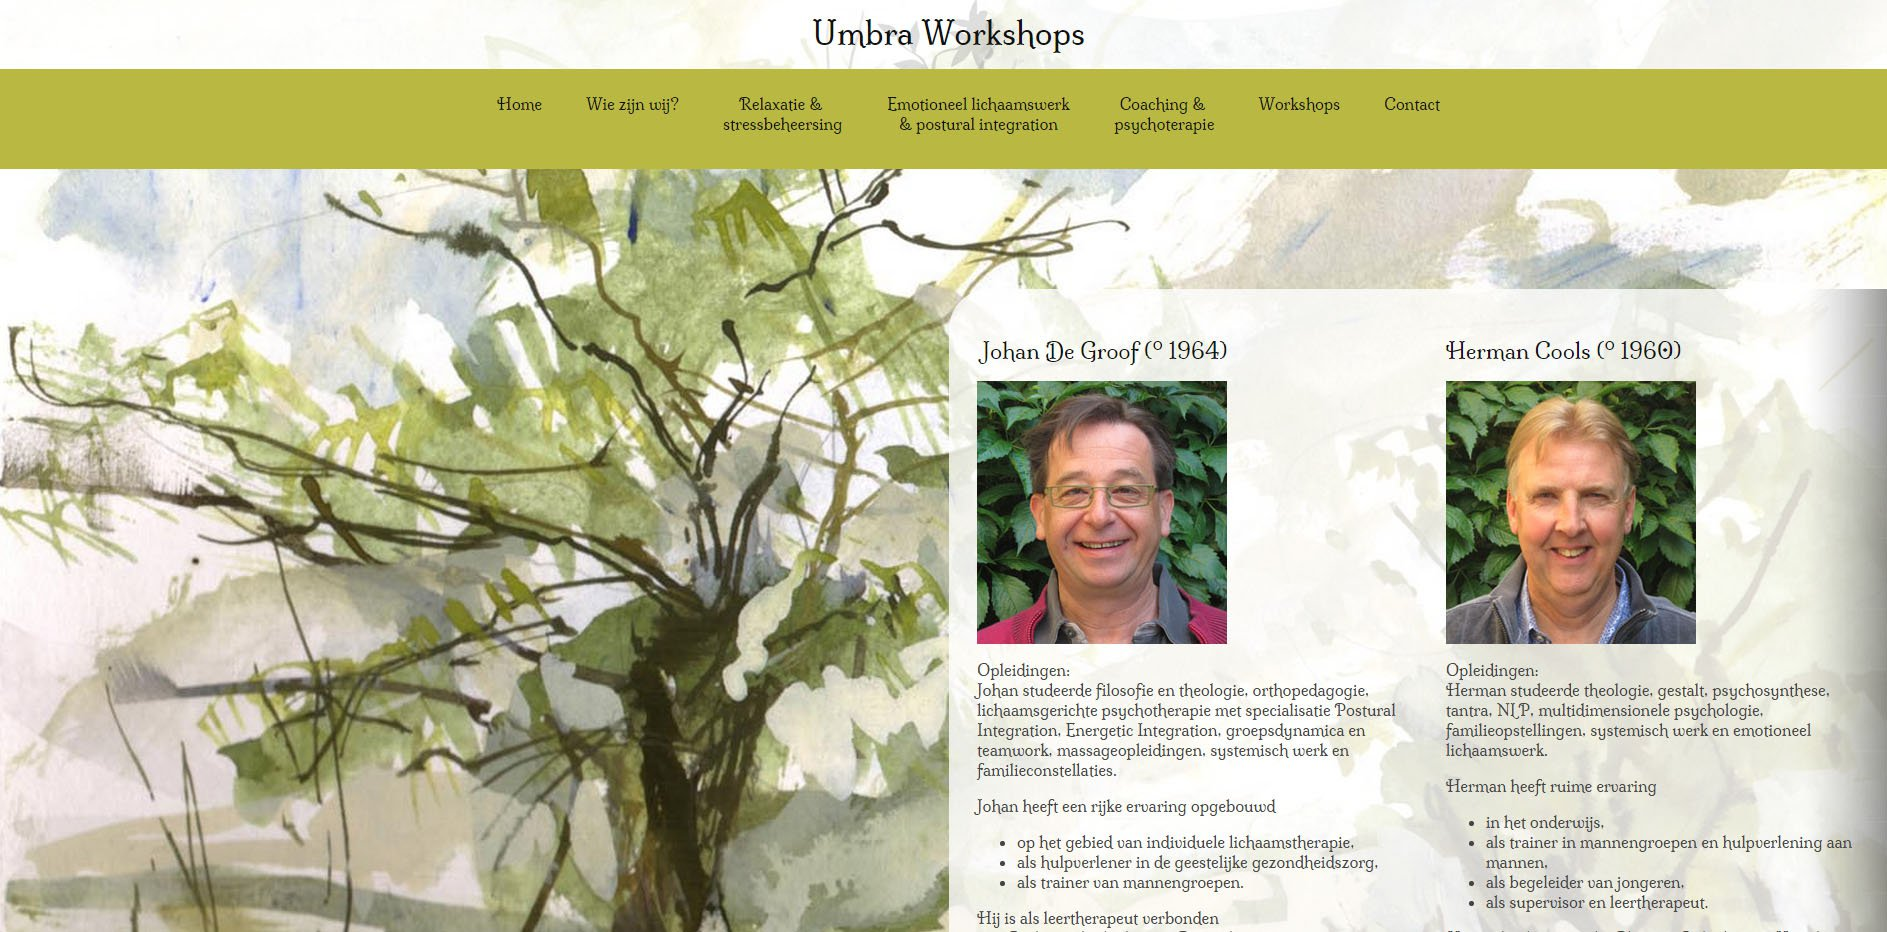 Umbra Workshops